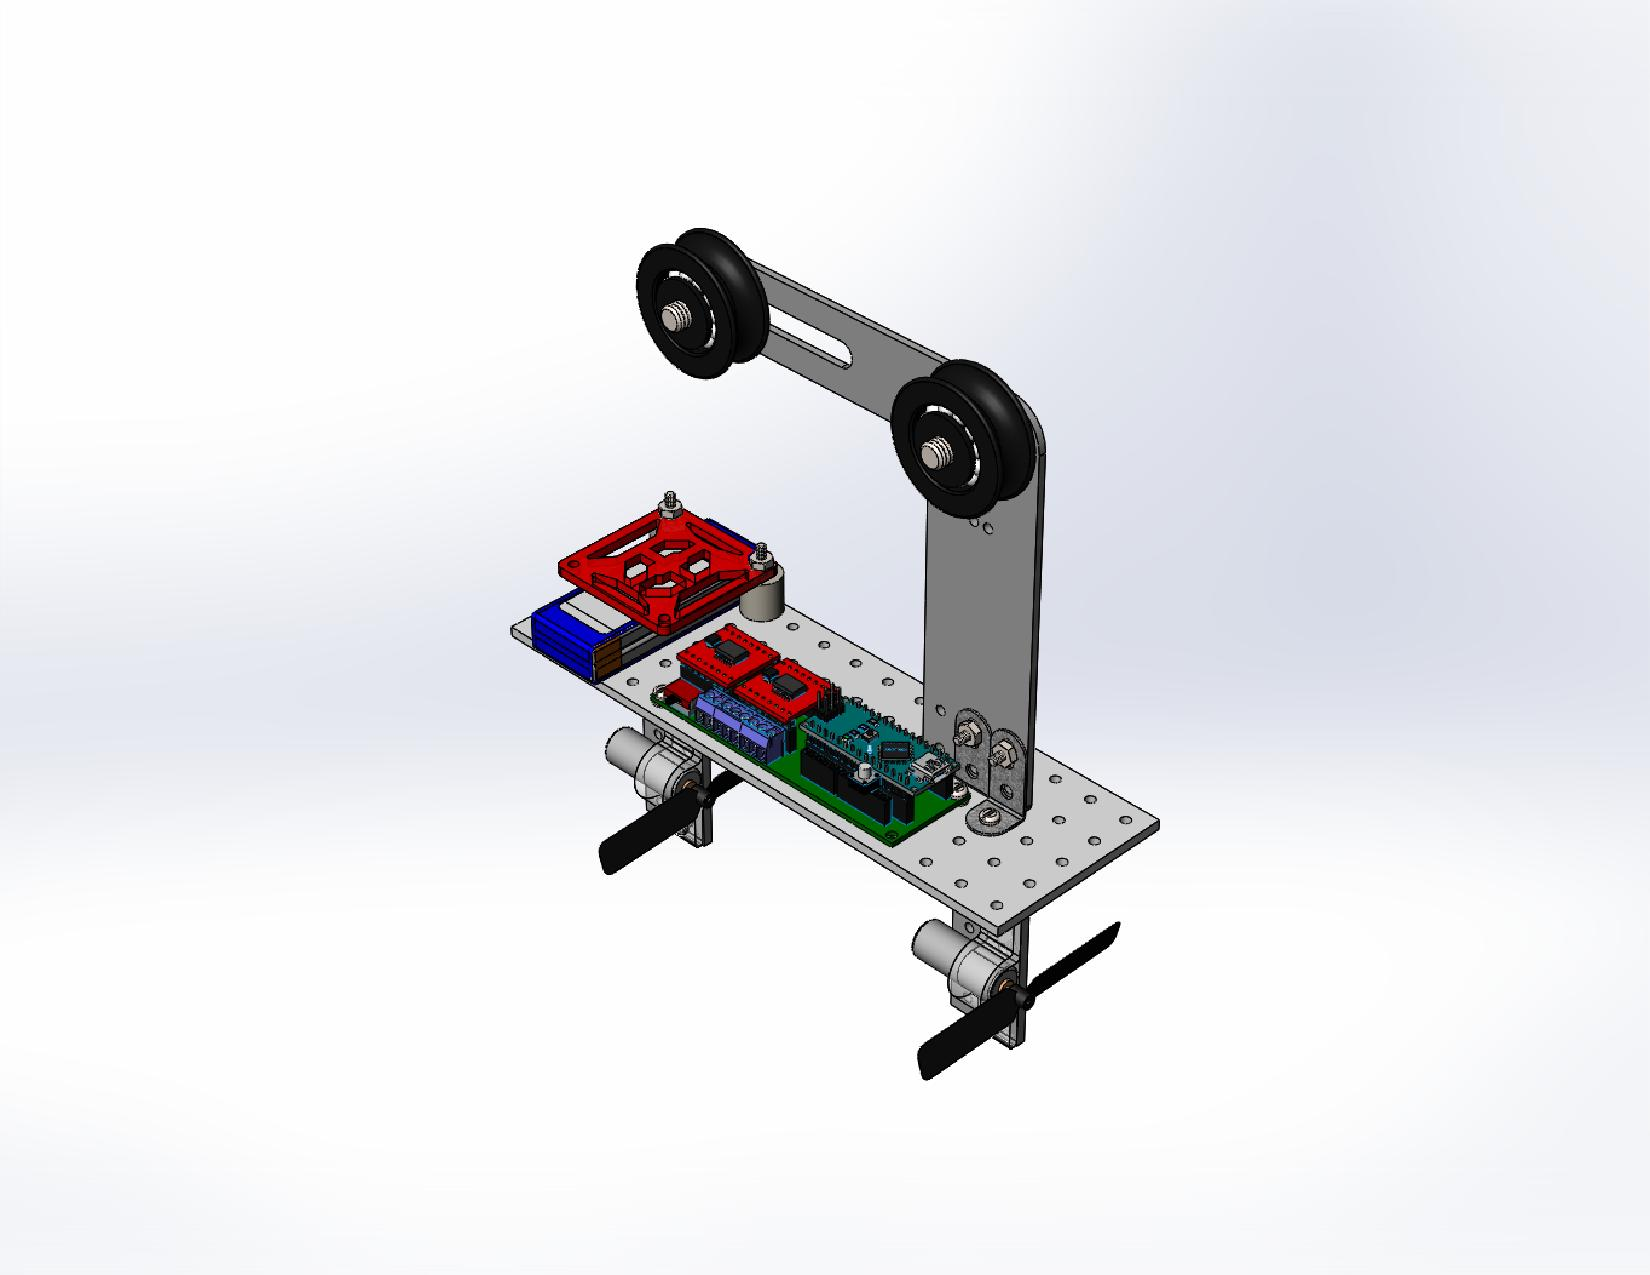 SolidWorks Model | ENGR 1182 Fall 2015 Group G